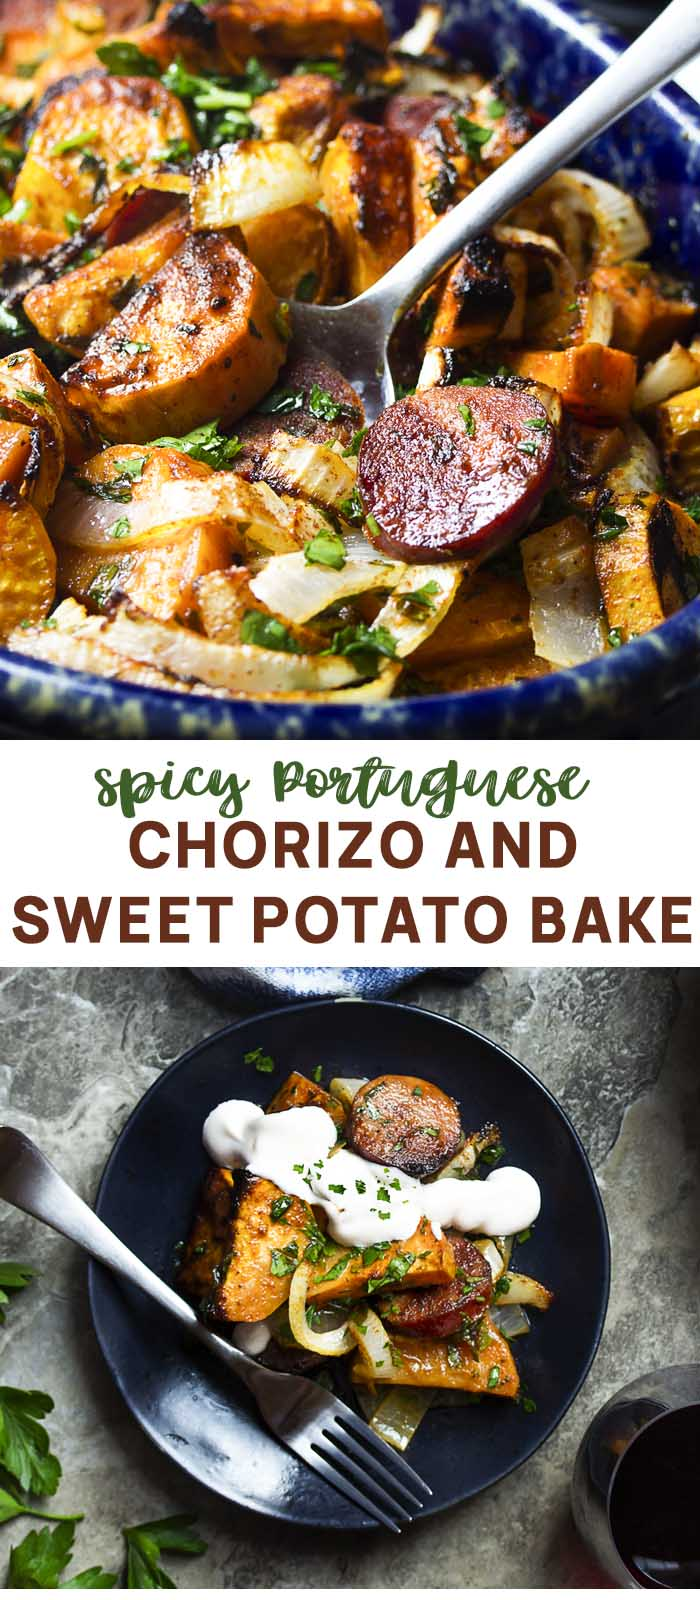 Casserole in baking dish with serving spoon with text overlay - Baked Chorizo and Sweet Potatoes.